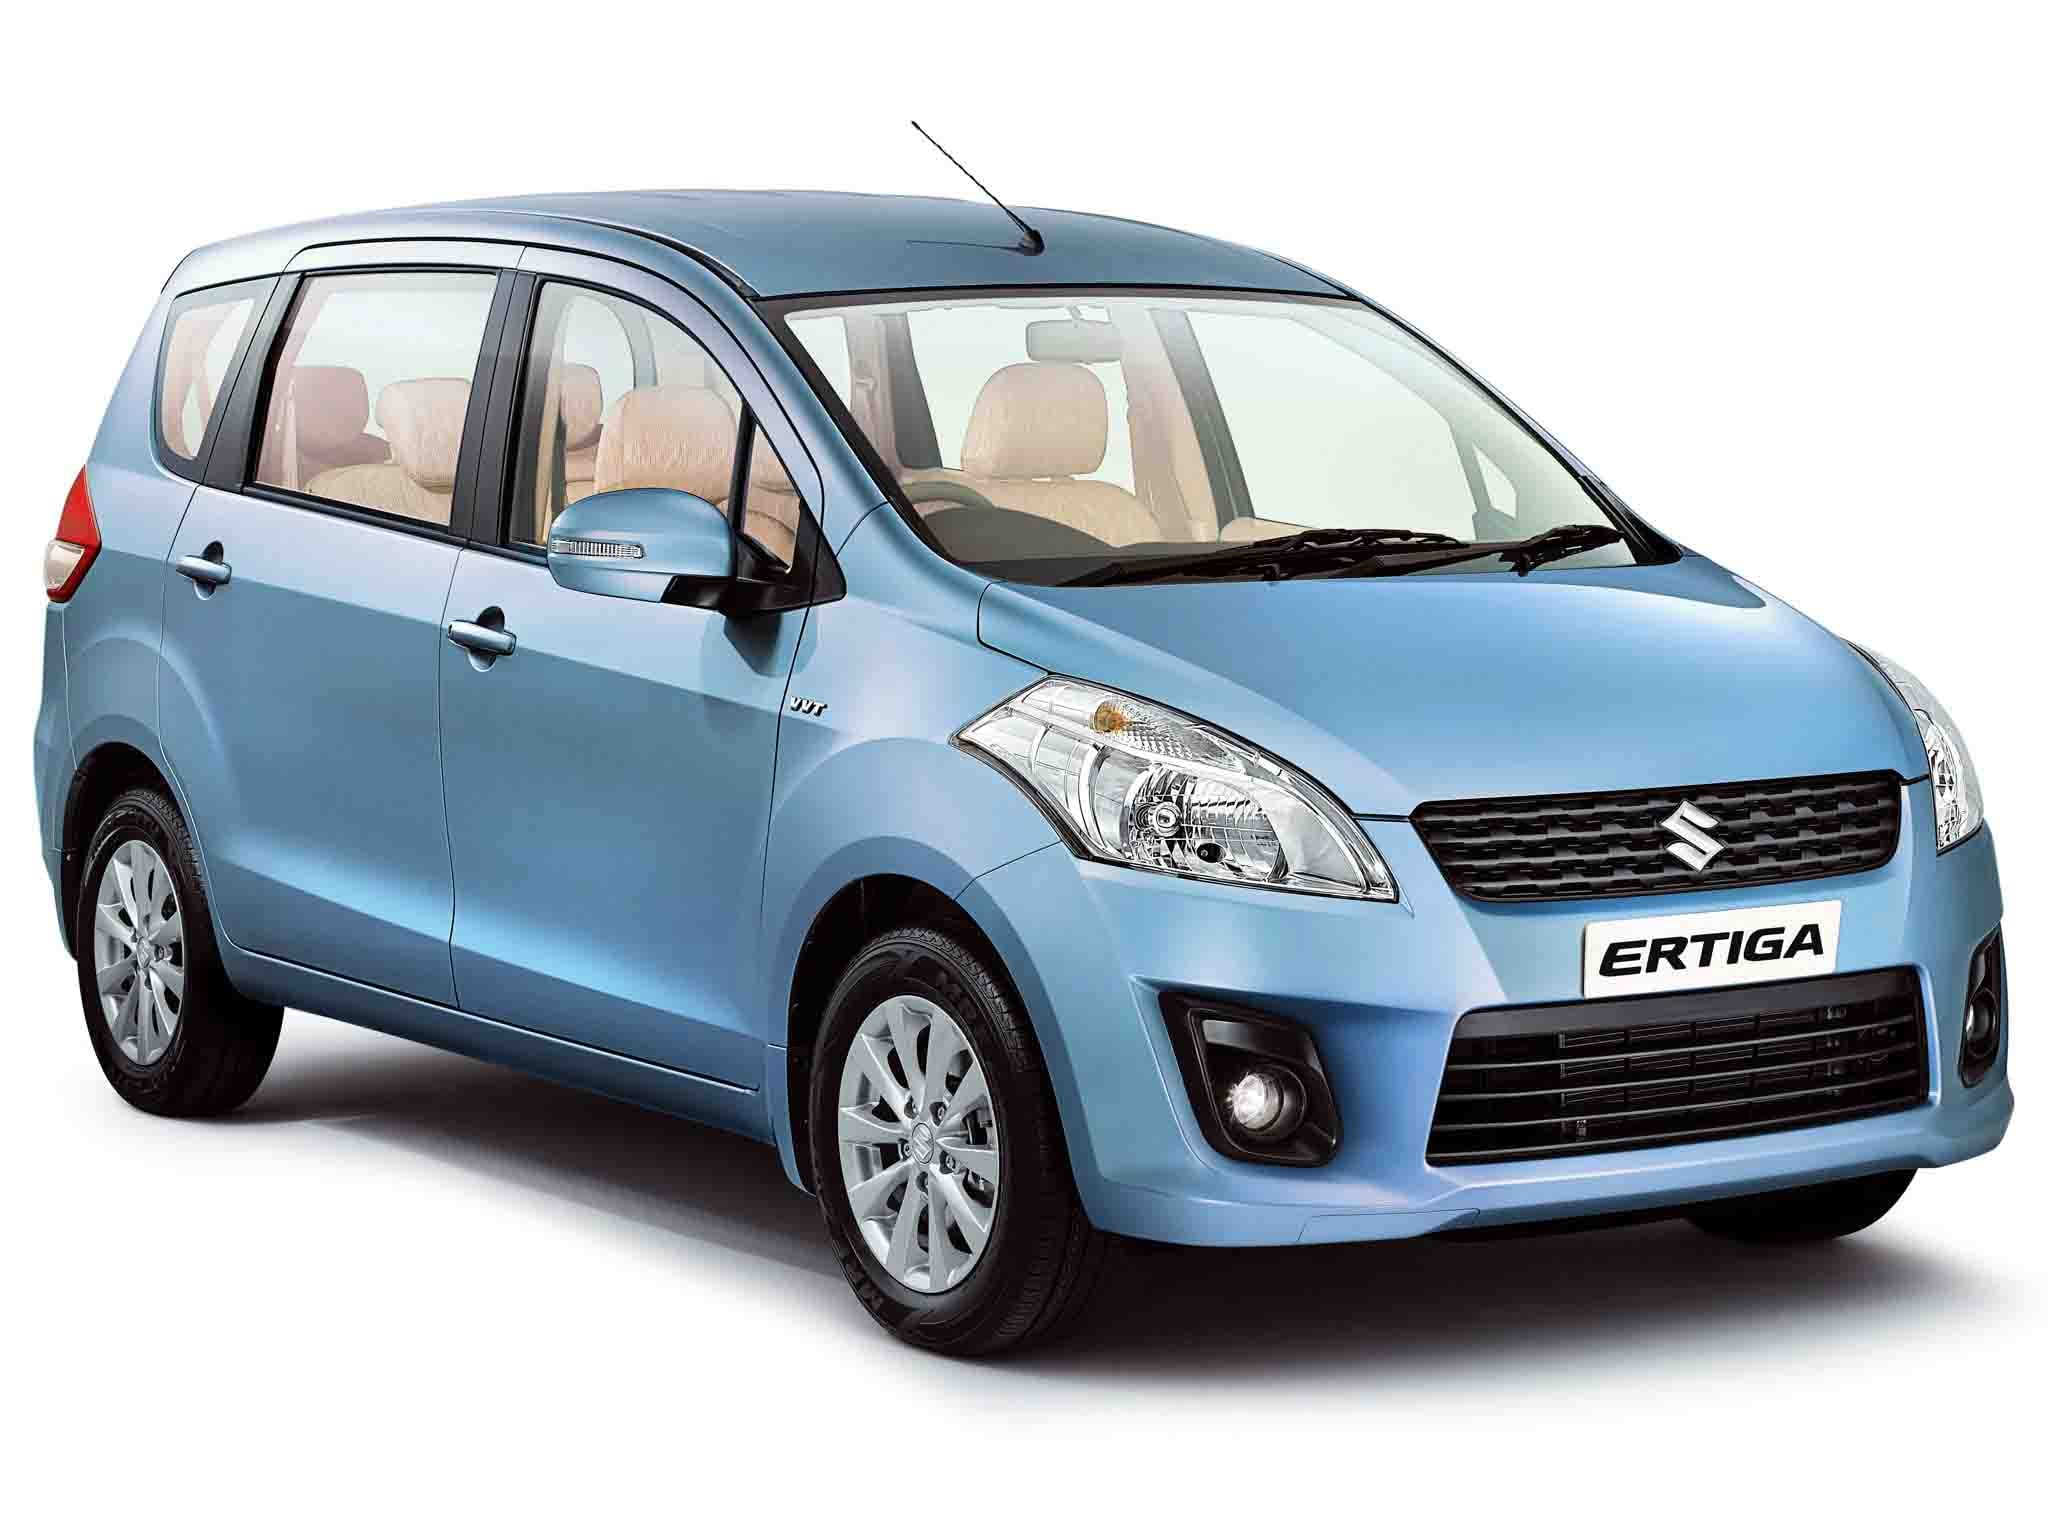 Which SUV is better between Creta Ecosport Duster and